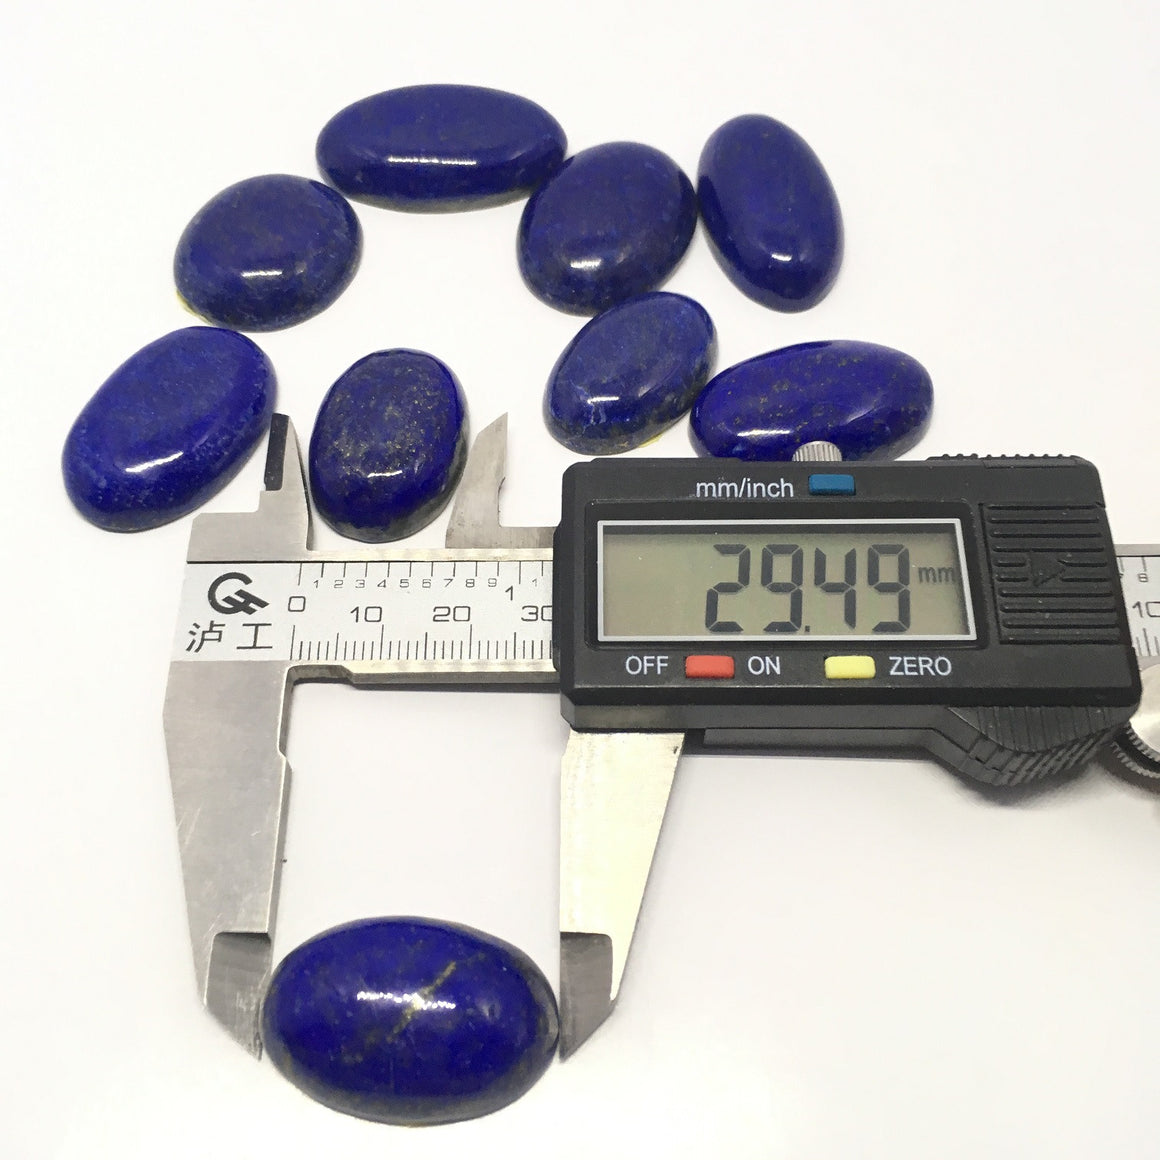 Lapis Lazuli Cabochon - Lapis Cabochon For Ring Oval Cut - 417.90 Carat